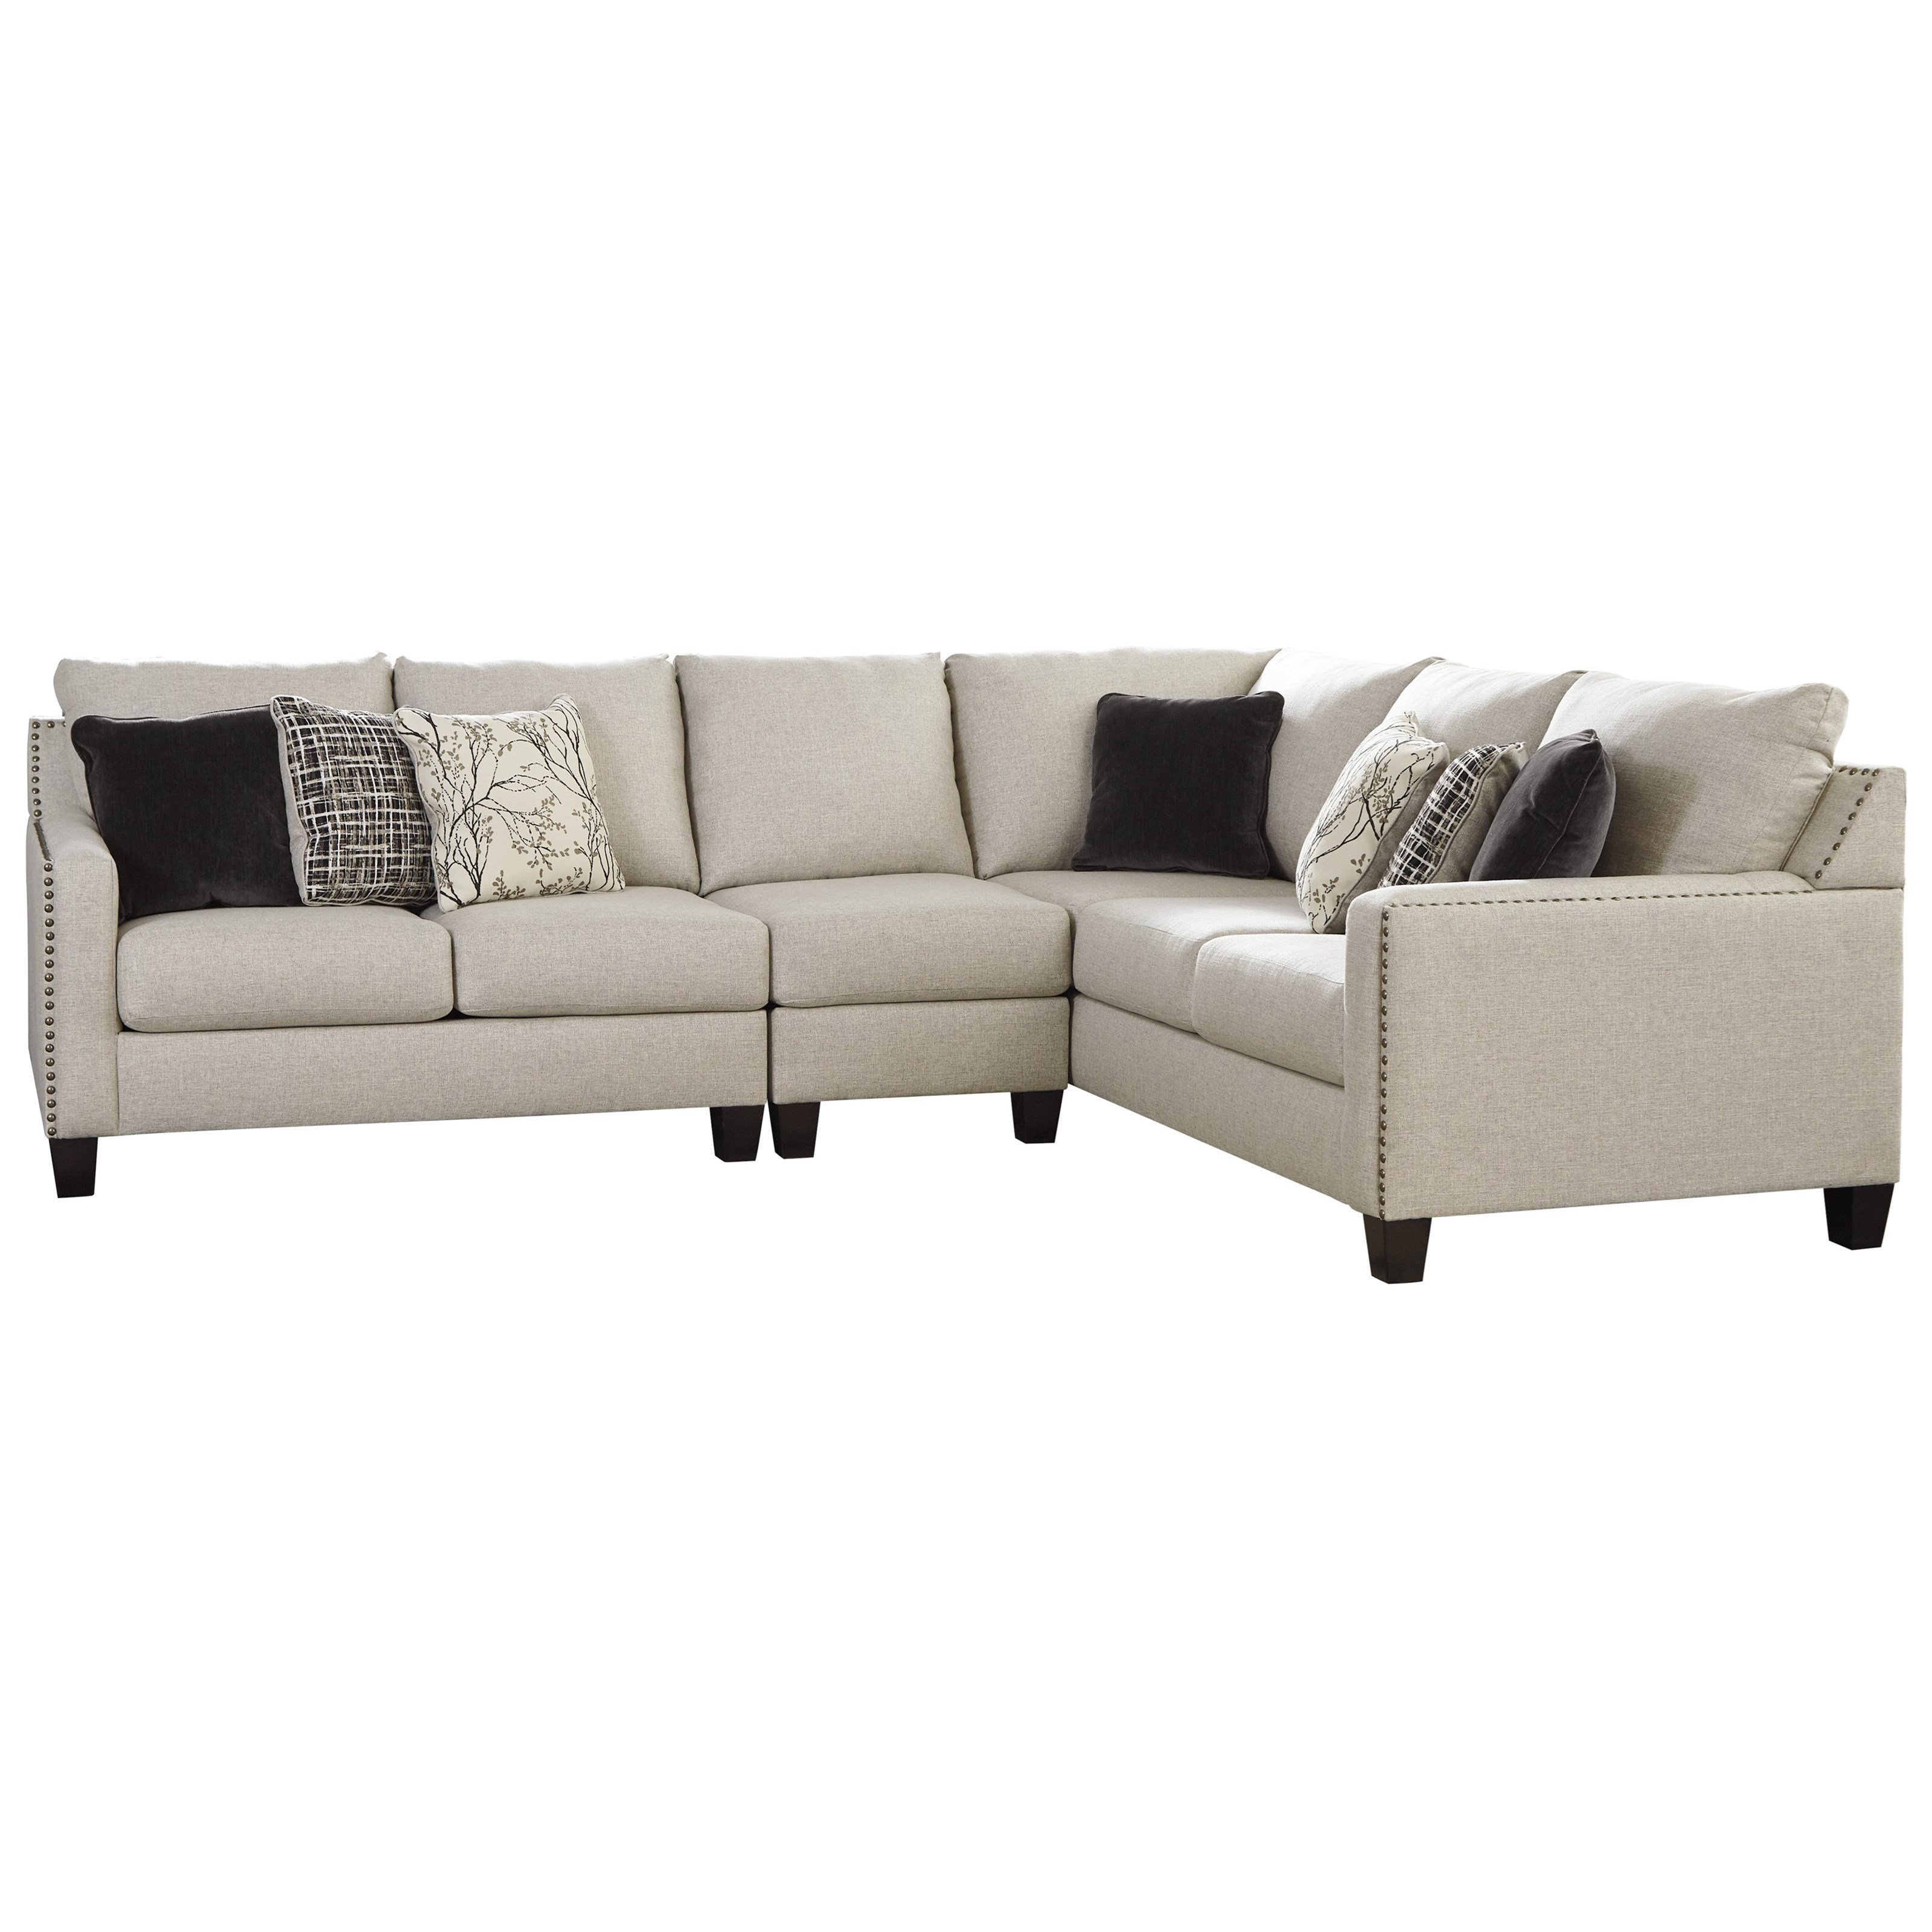 Signature Design By Ashley Hallenberg3 Piece Sectional ...